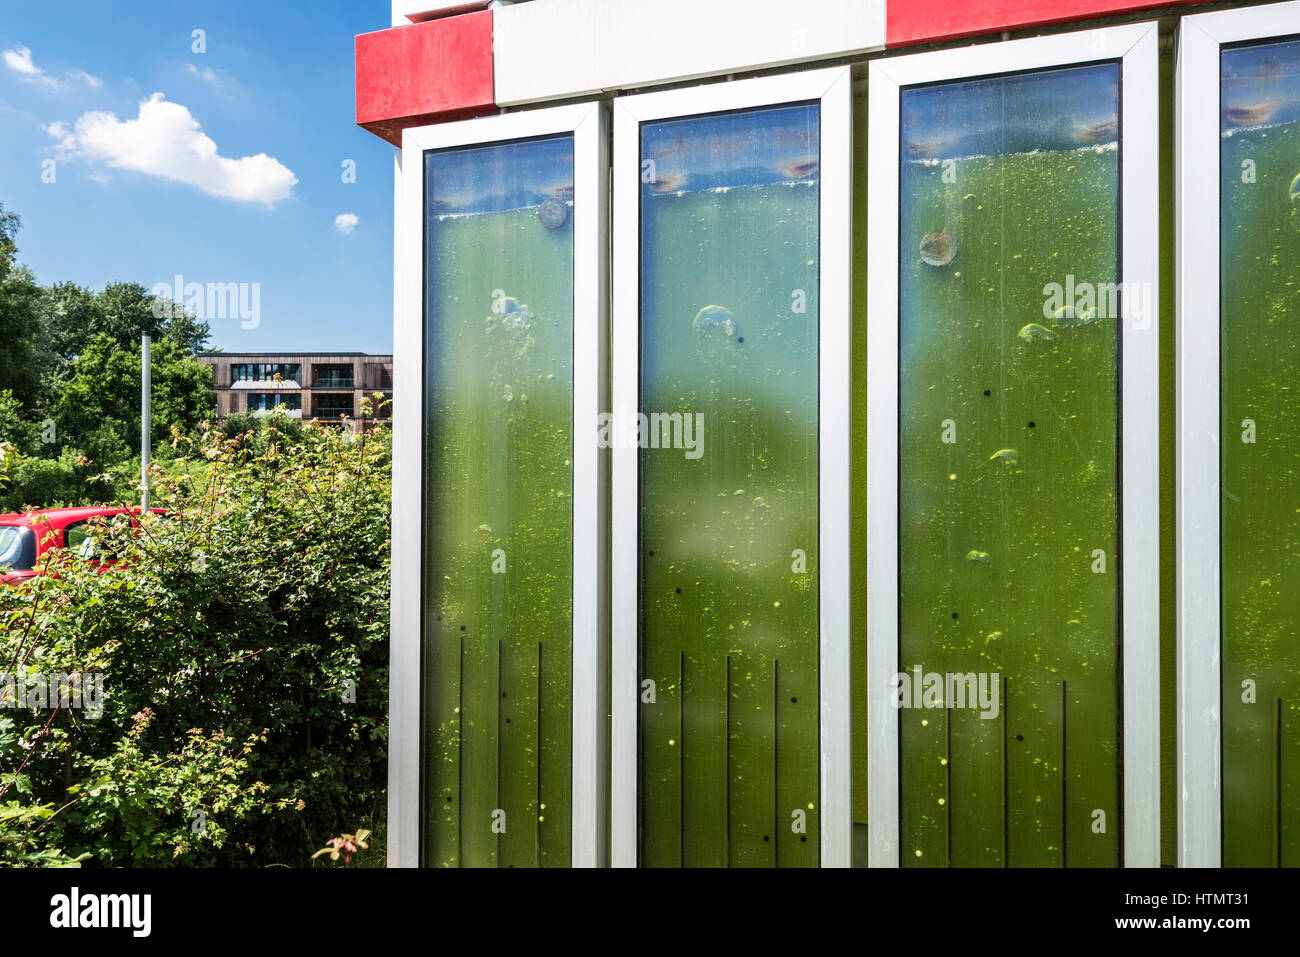 biq algae house wilhelmsburg hamburg germany stock photo royalty free image 135682261 alamy. Black Bedroom Furniture Sets. Home Design Ideas